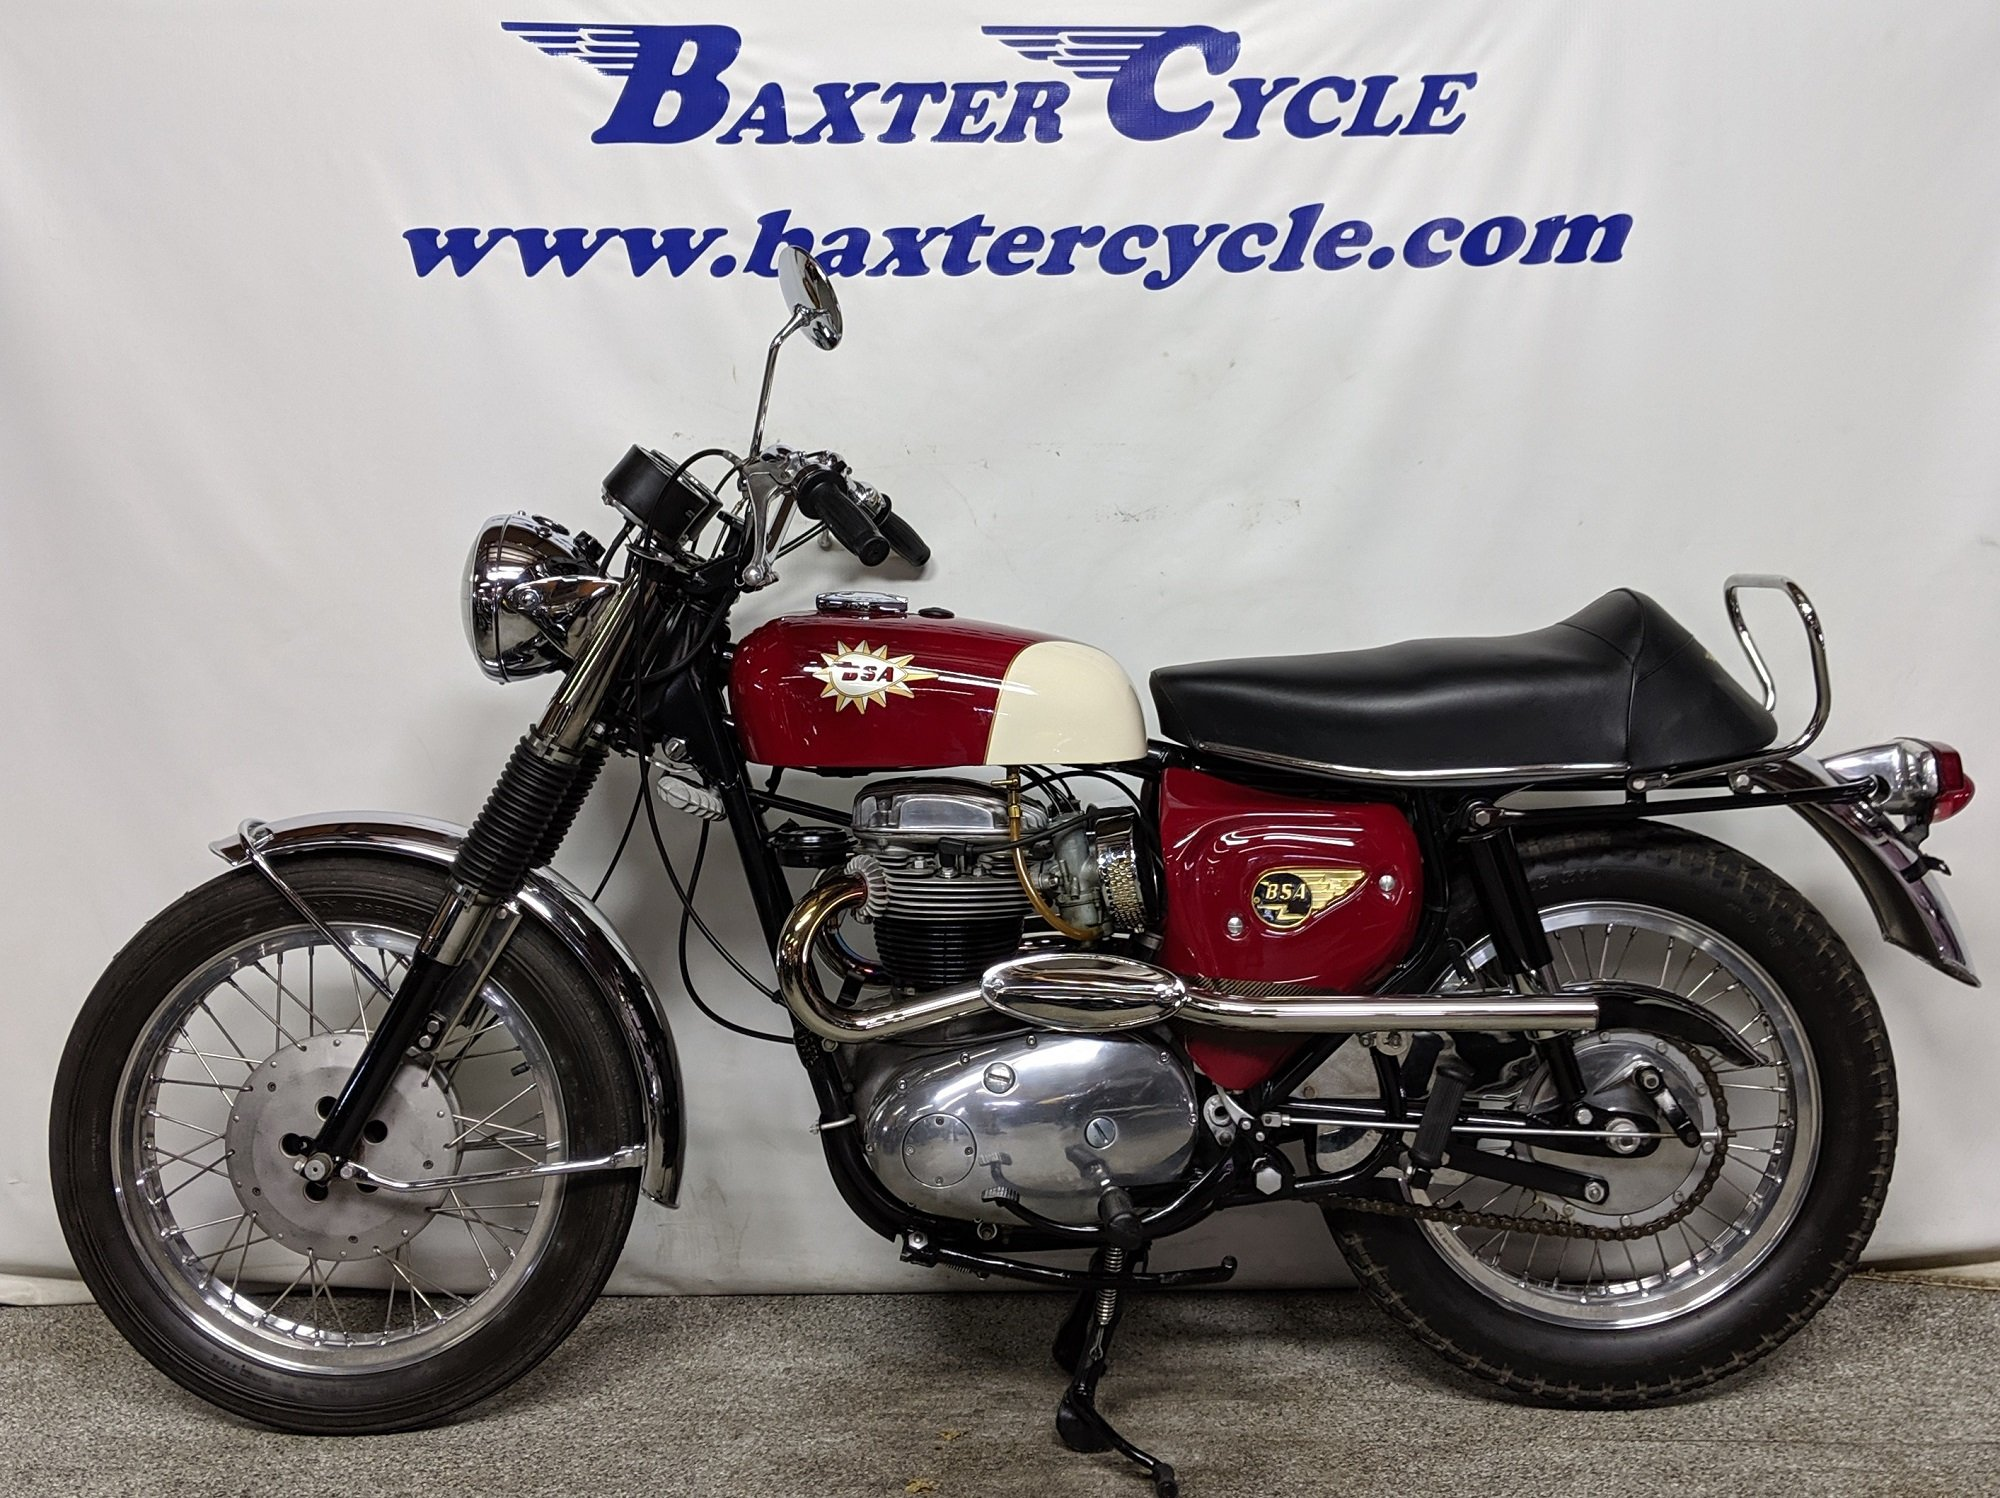 [Linked Image from baxtercycle.com]